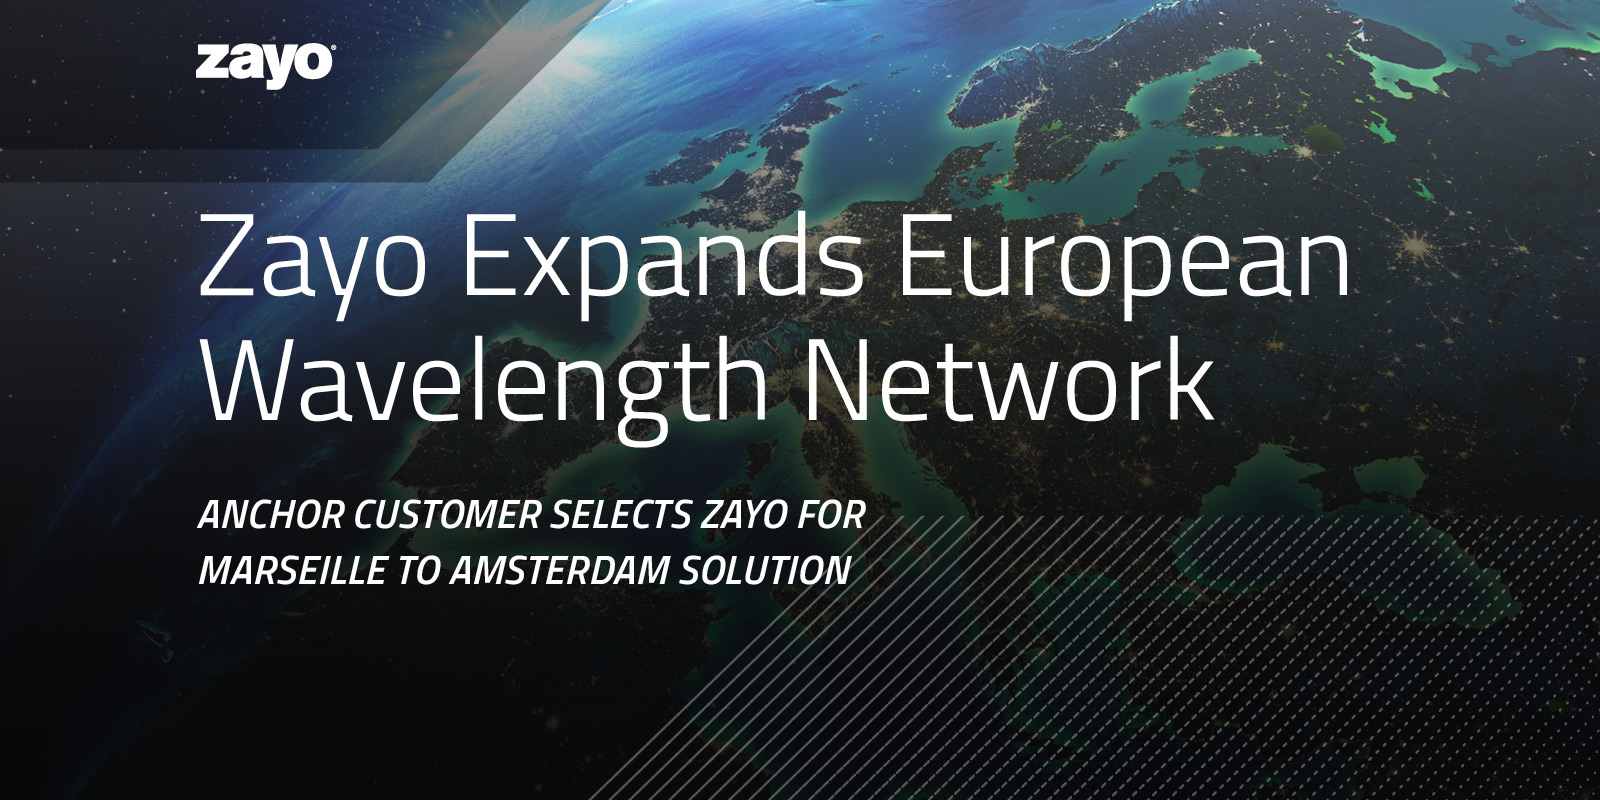 Zayo Expands European Wavelength Network